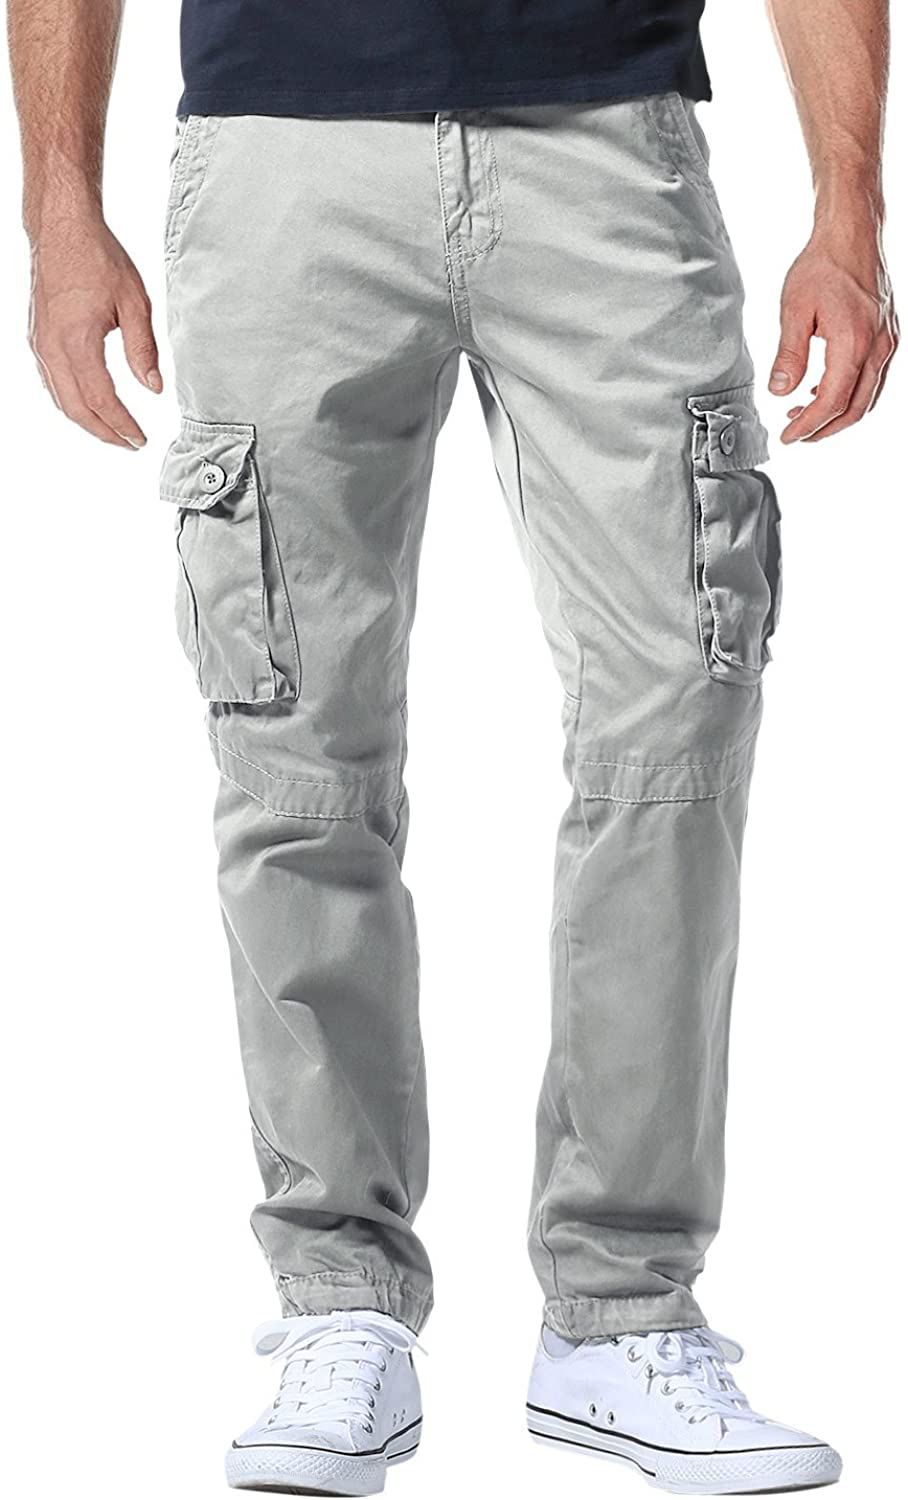 Max 59% OFF Match Men's Athletic-Fit Cargo Max 52% OFF Pants